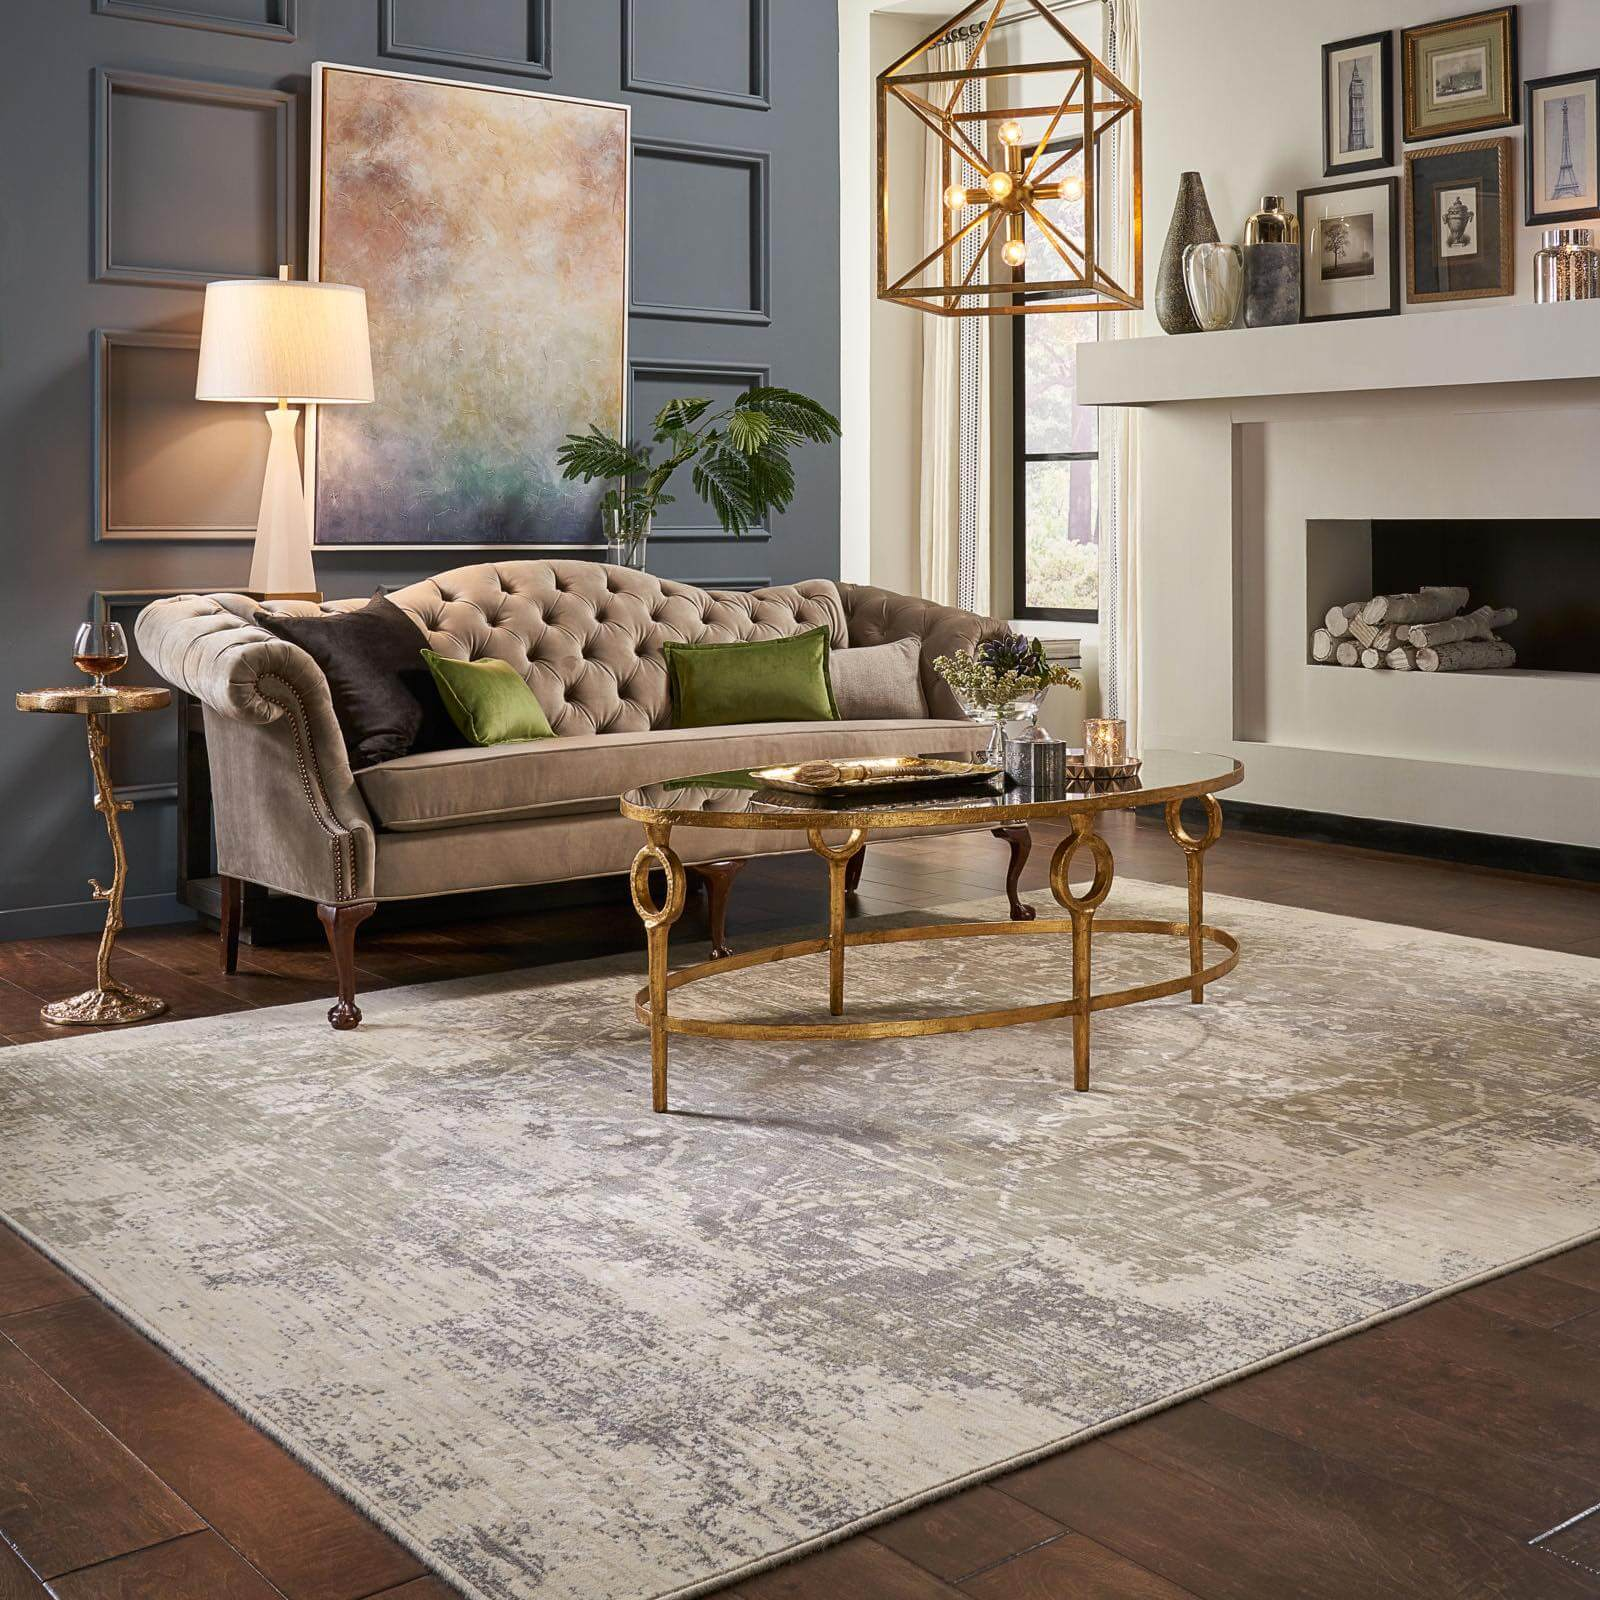 Area Rug in living room | Floors by Roberts